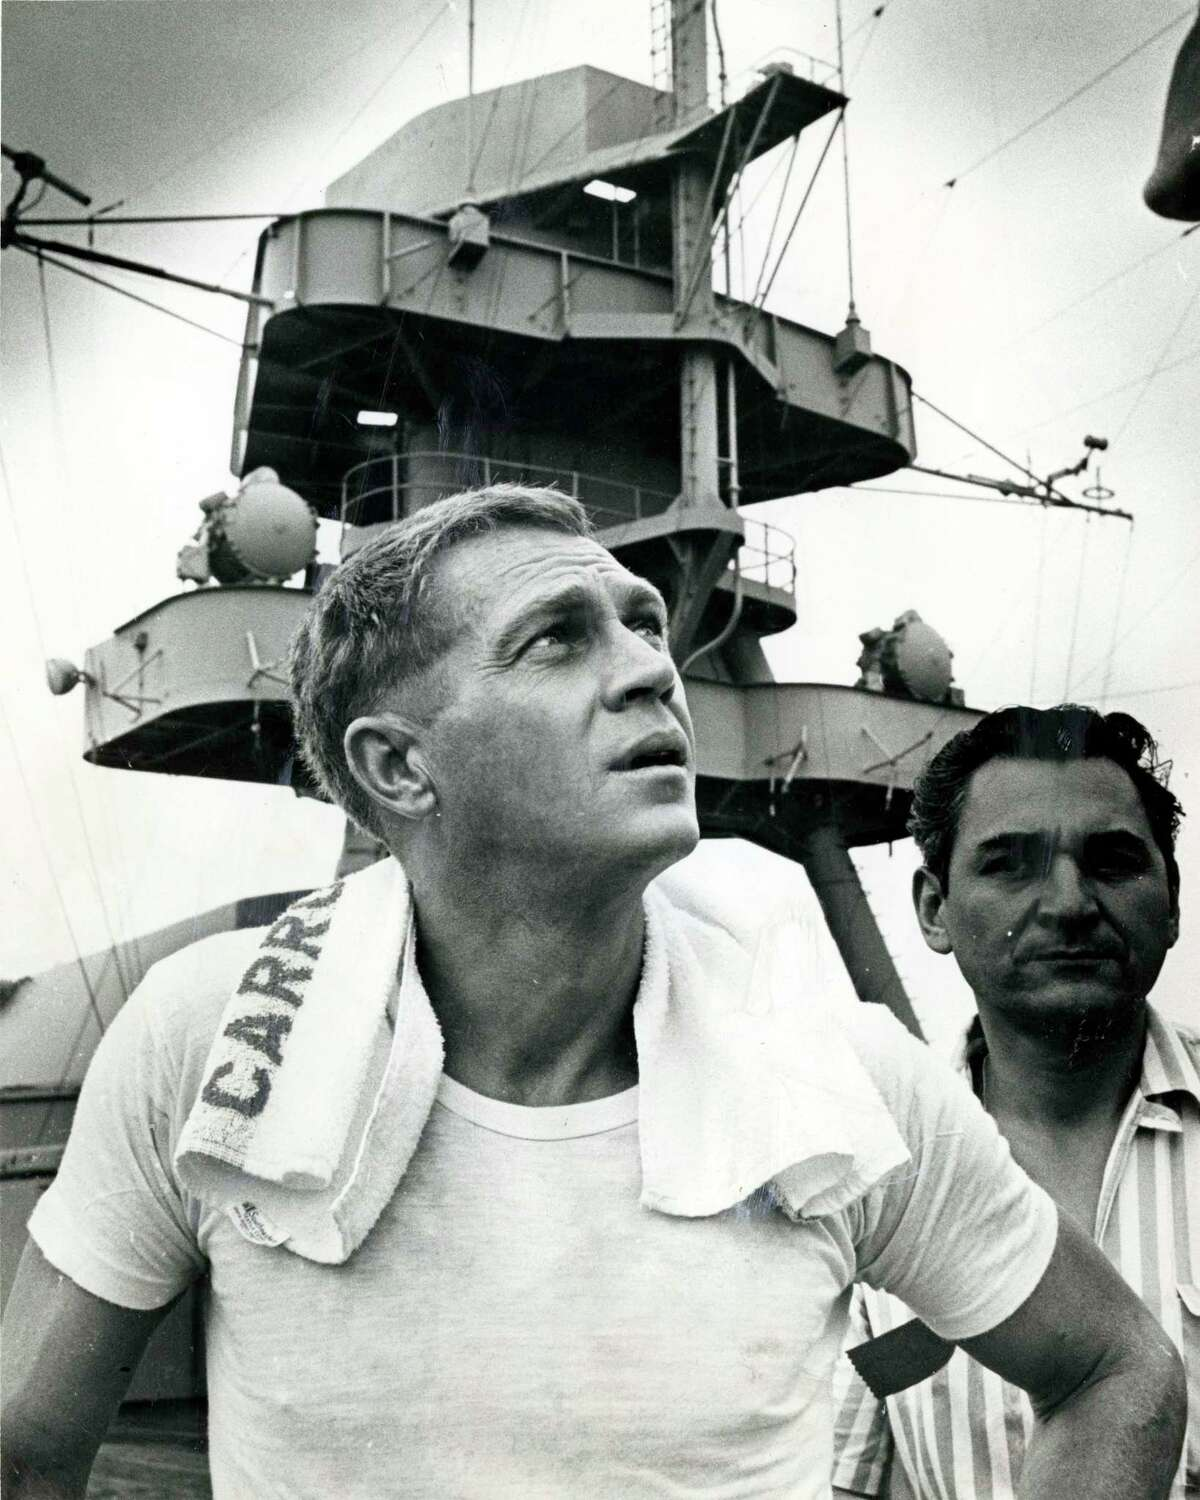 In 1966, actor Steve McQueen came to Houston to shoot scenes aboard the USS Texas for